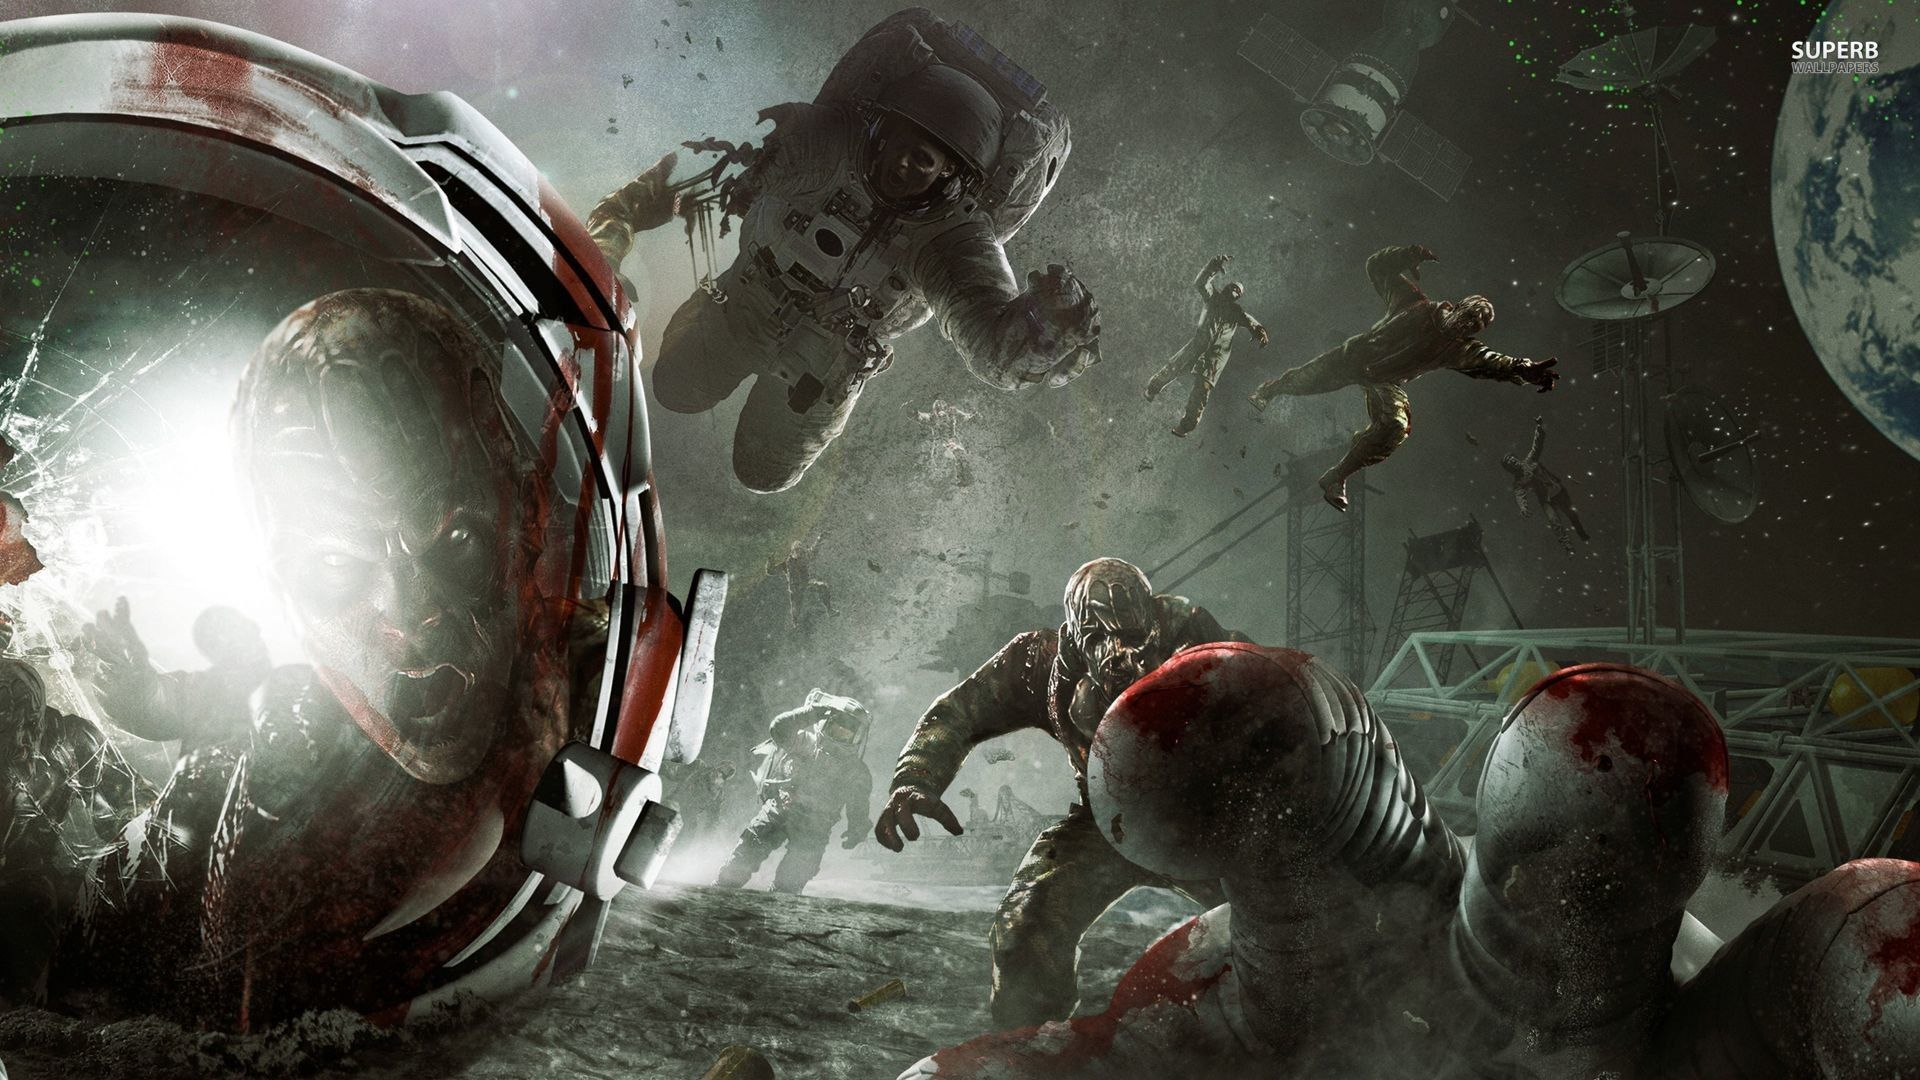 19201080 Black Ops Zombies Wallpaper P Wallpapers Pinterest Zombie 4k Zombie Wallpaper Black Ops Zombies Call Of Duty